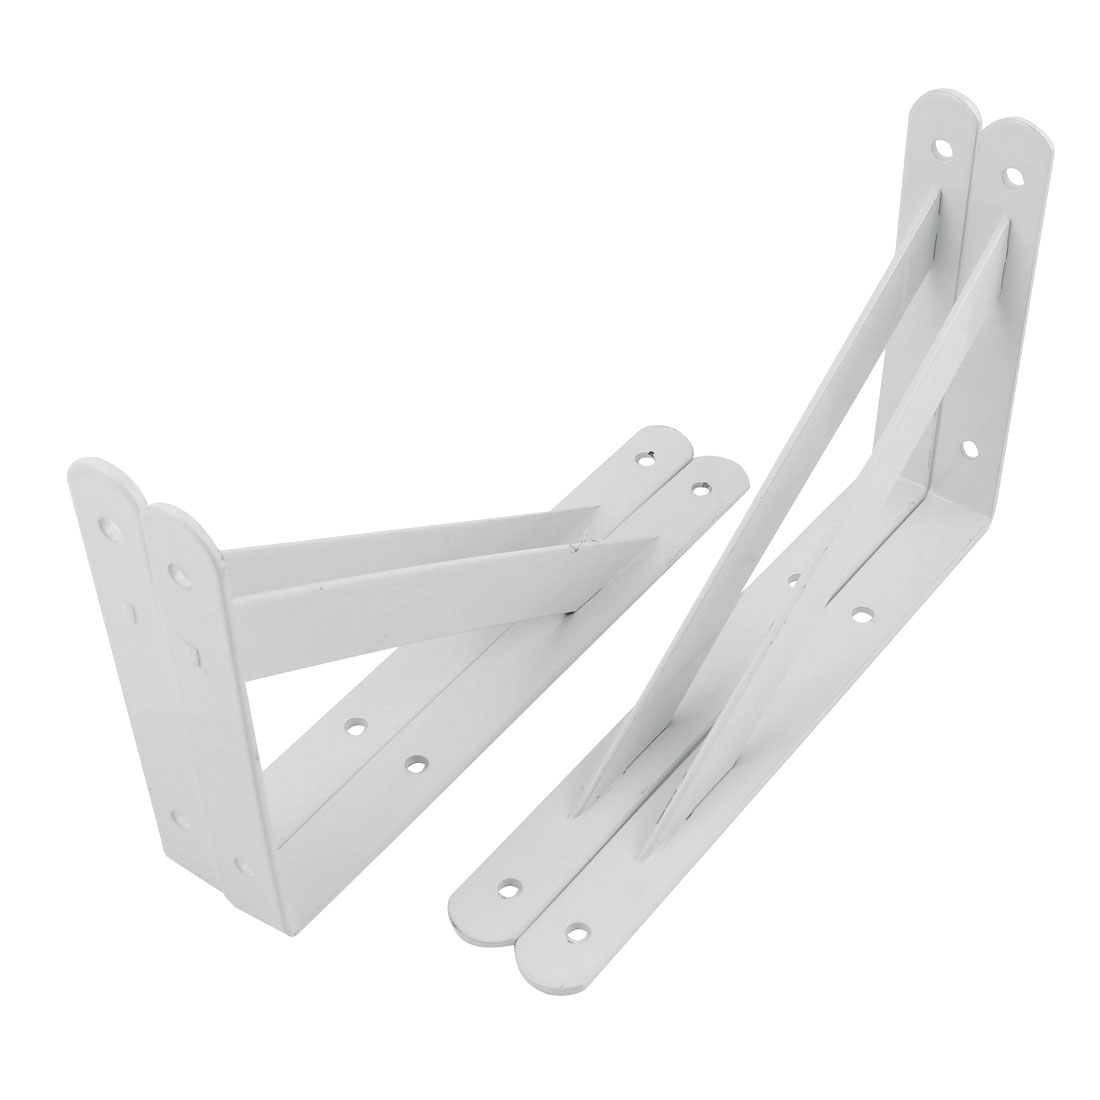 "4 Pcs White Right Angle Shop Store Wall Mounted Shelf Brackets 7"" x 5.5"""